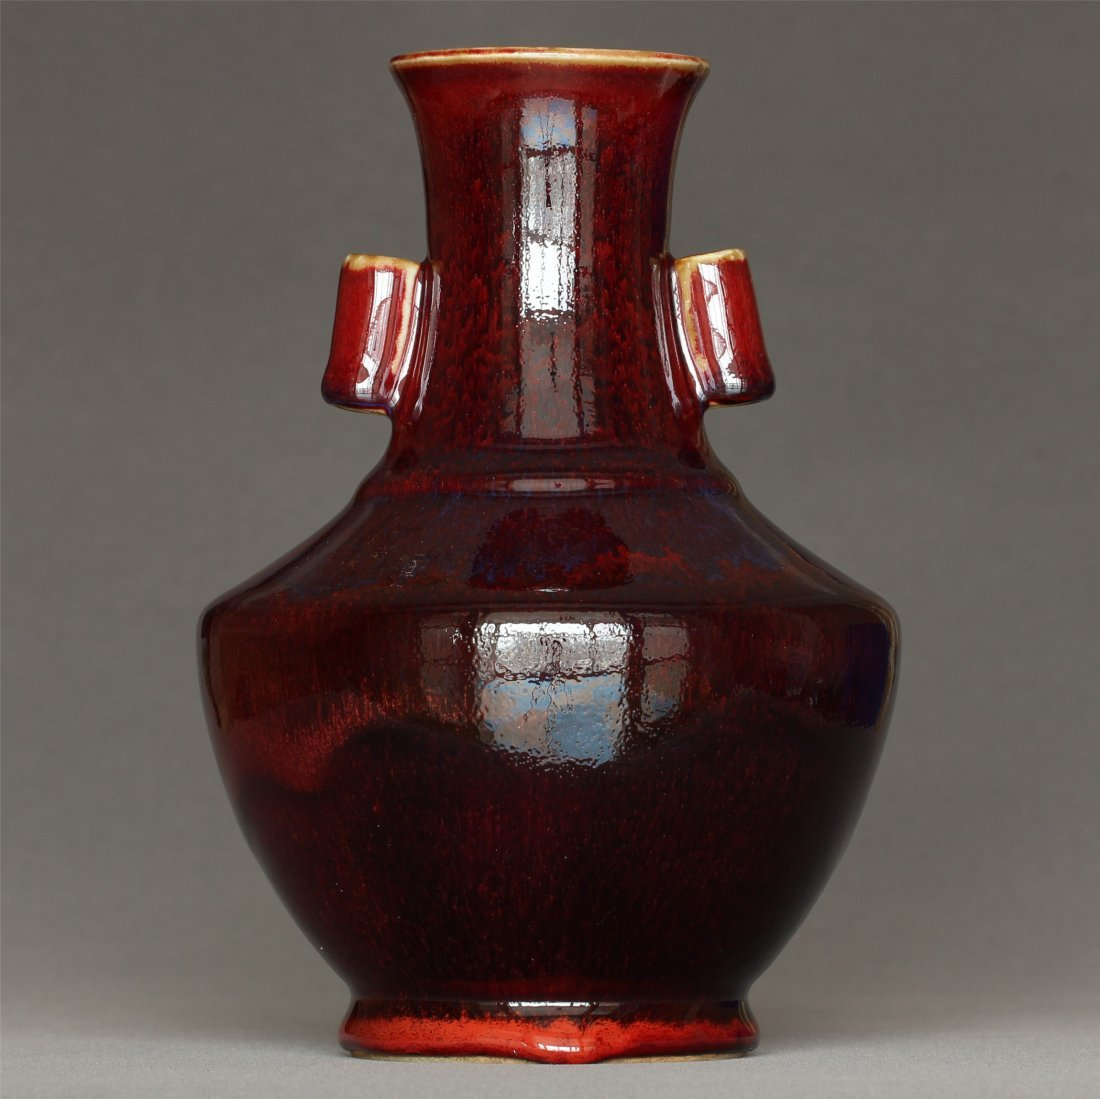 Red glaze porcelain vase of Qing Dynasty QianLong mark.